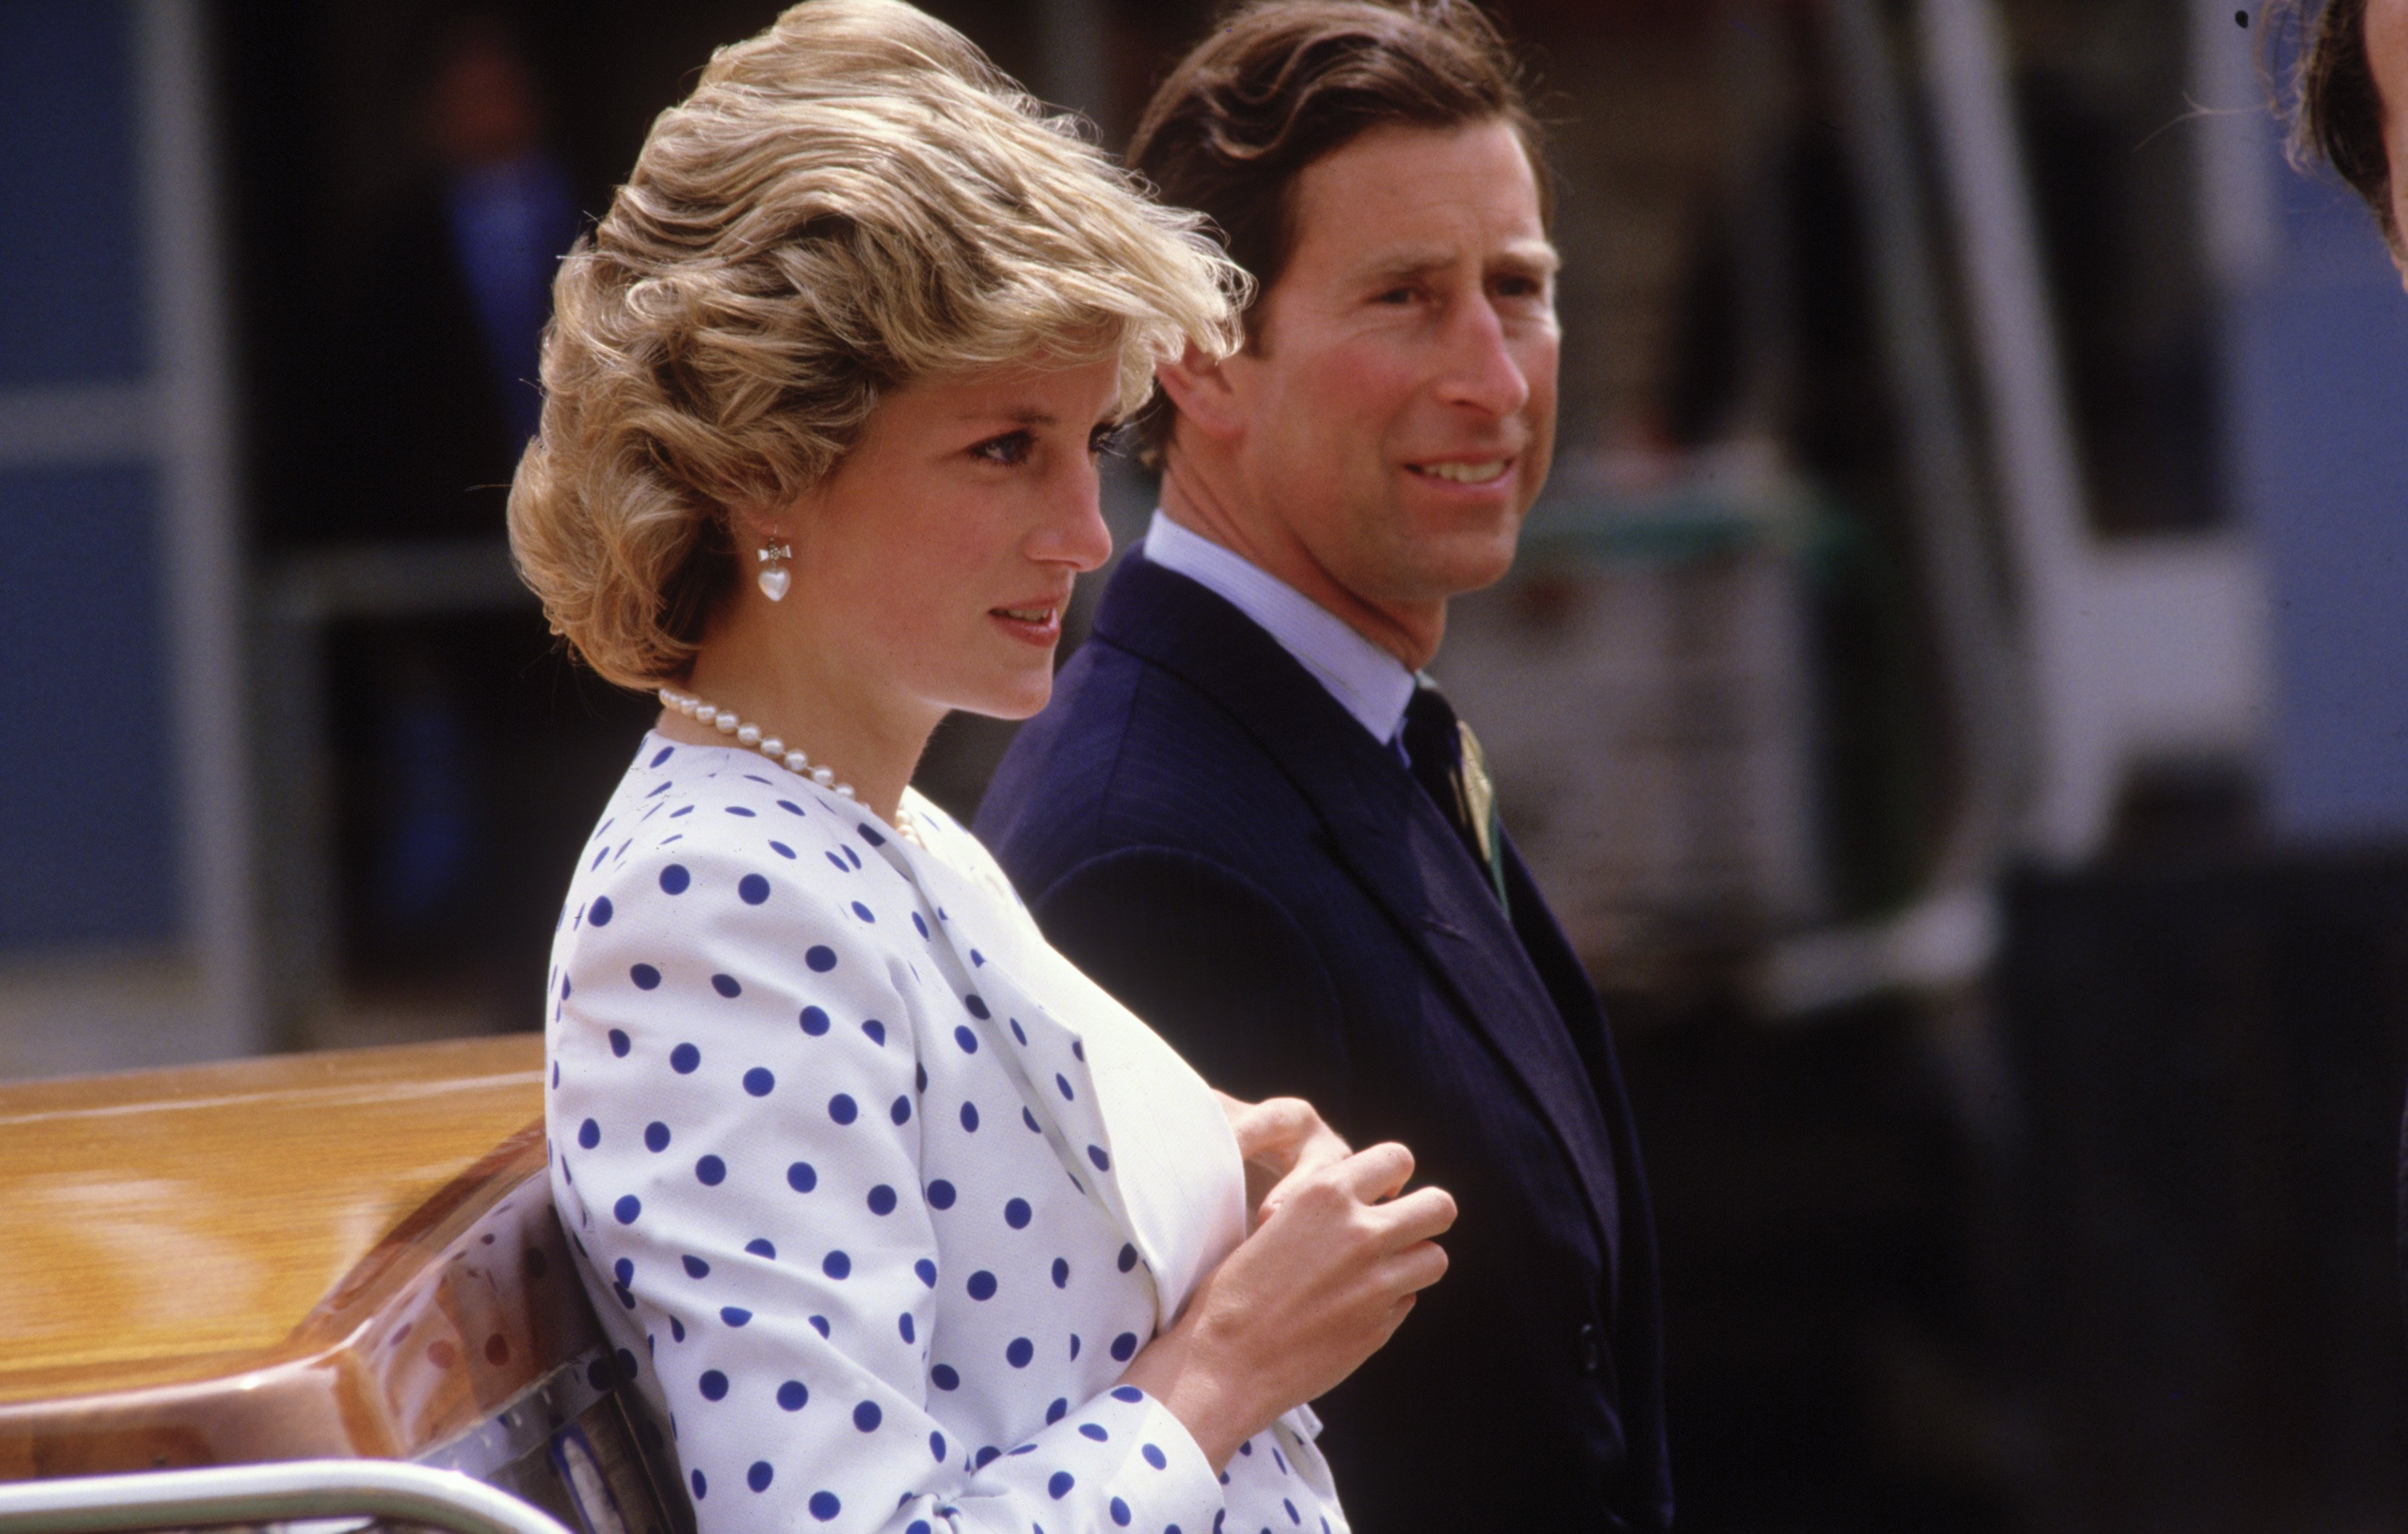 Photo of Prince Charles and Princess Diana | Photo: Getty Images